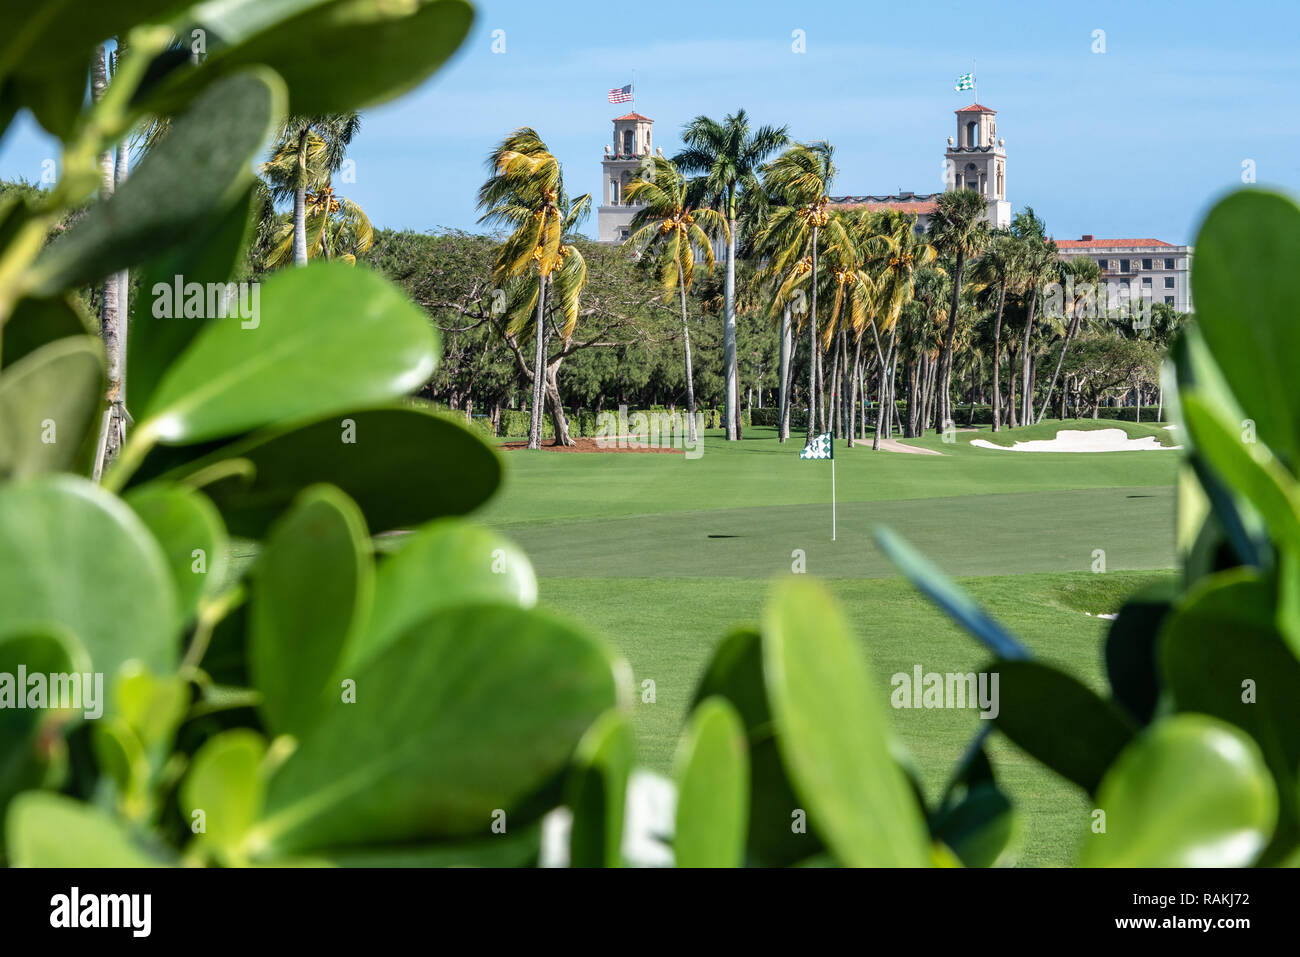 The Ocean Course, Florida's oldest golf course, at The Breakers oceanfront resort in Palm Beach, Florida. (USA) - Stock Image